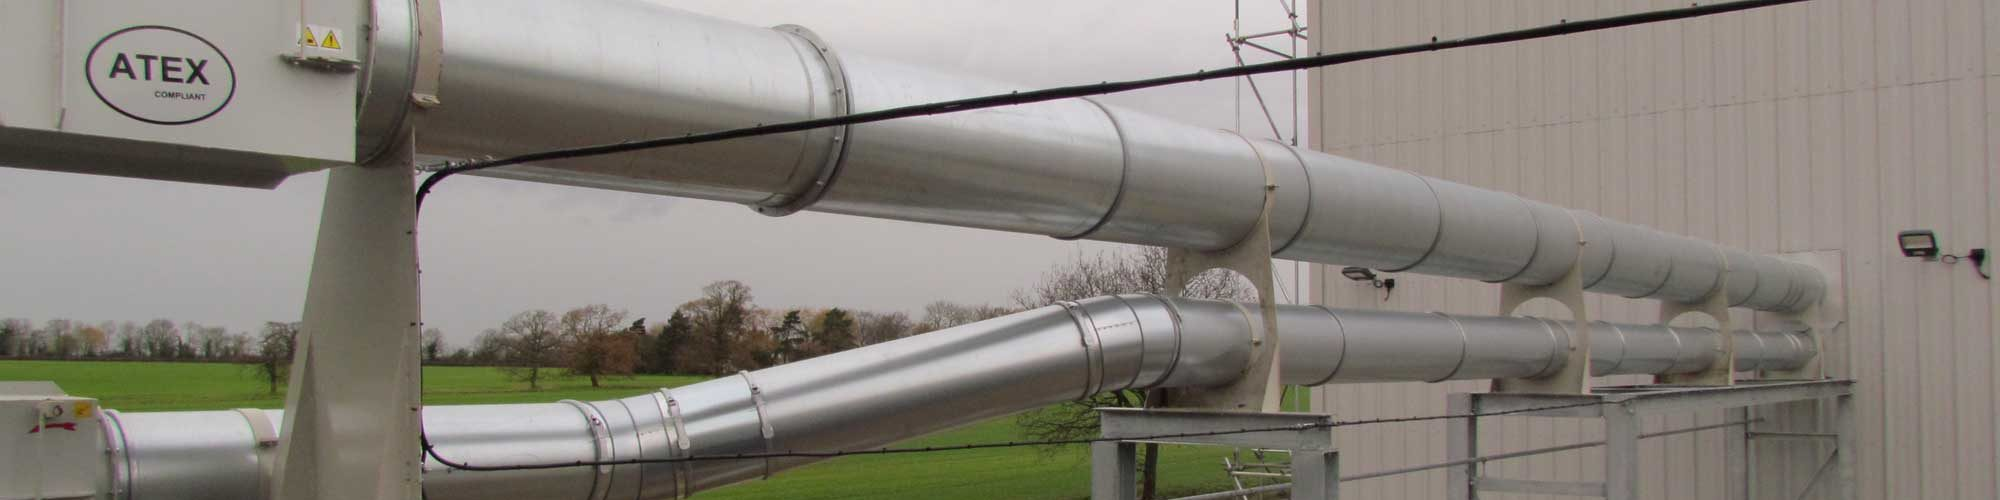 Industrial Dust Extraction Ducting